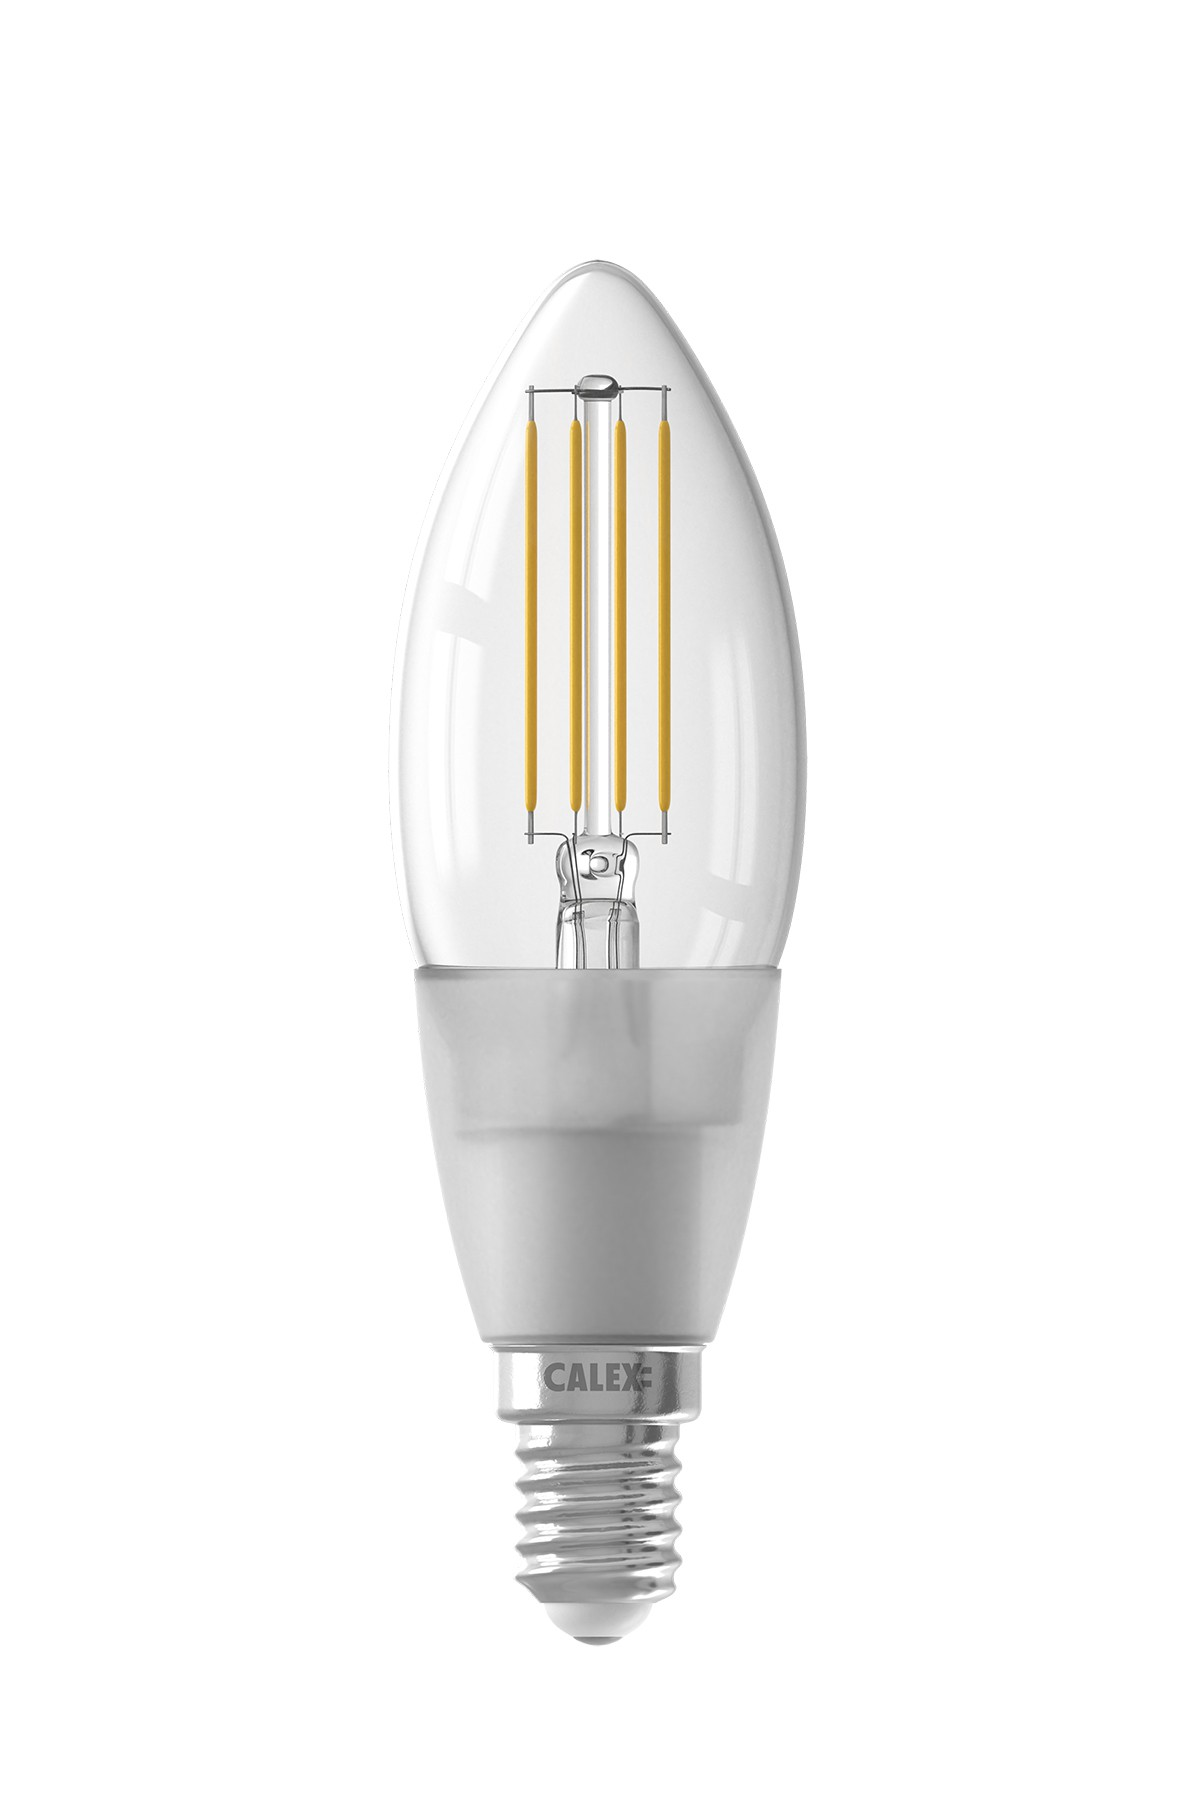 Calex Smart Candle LED lamp 4,5W 450lm 1800-3000K